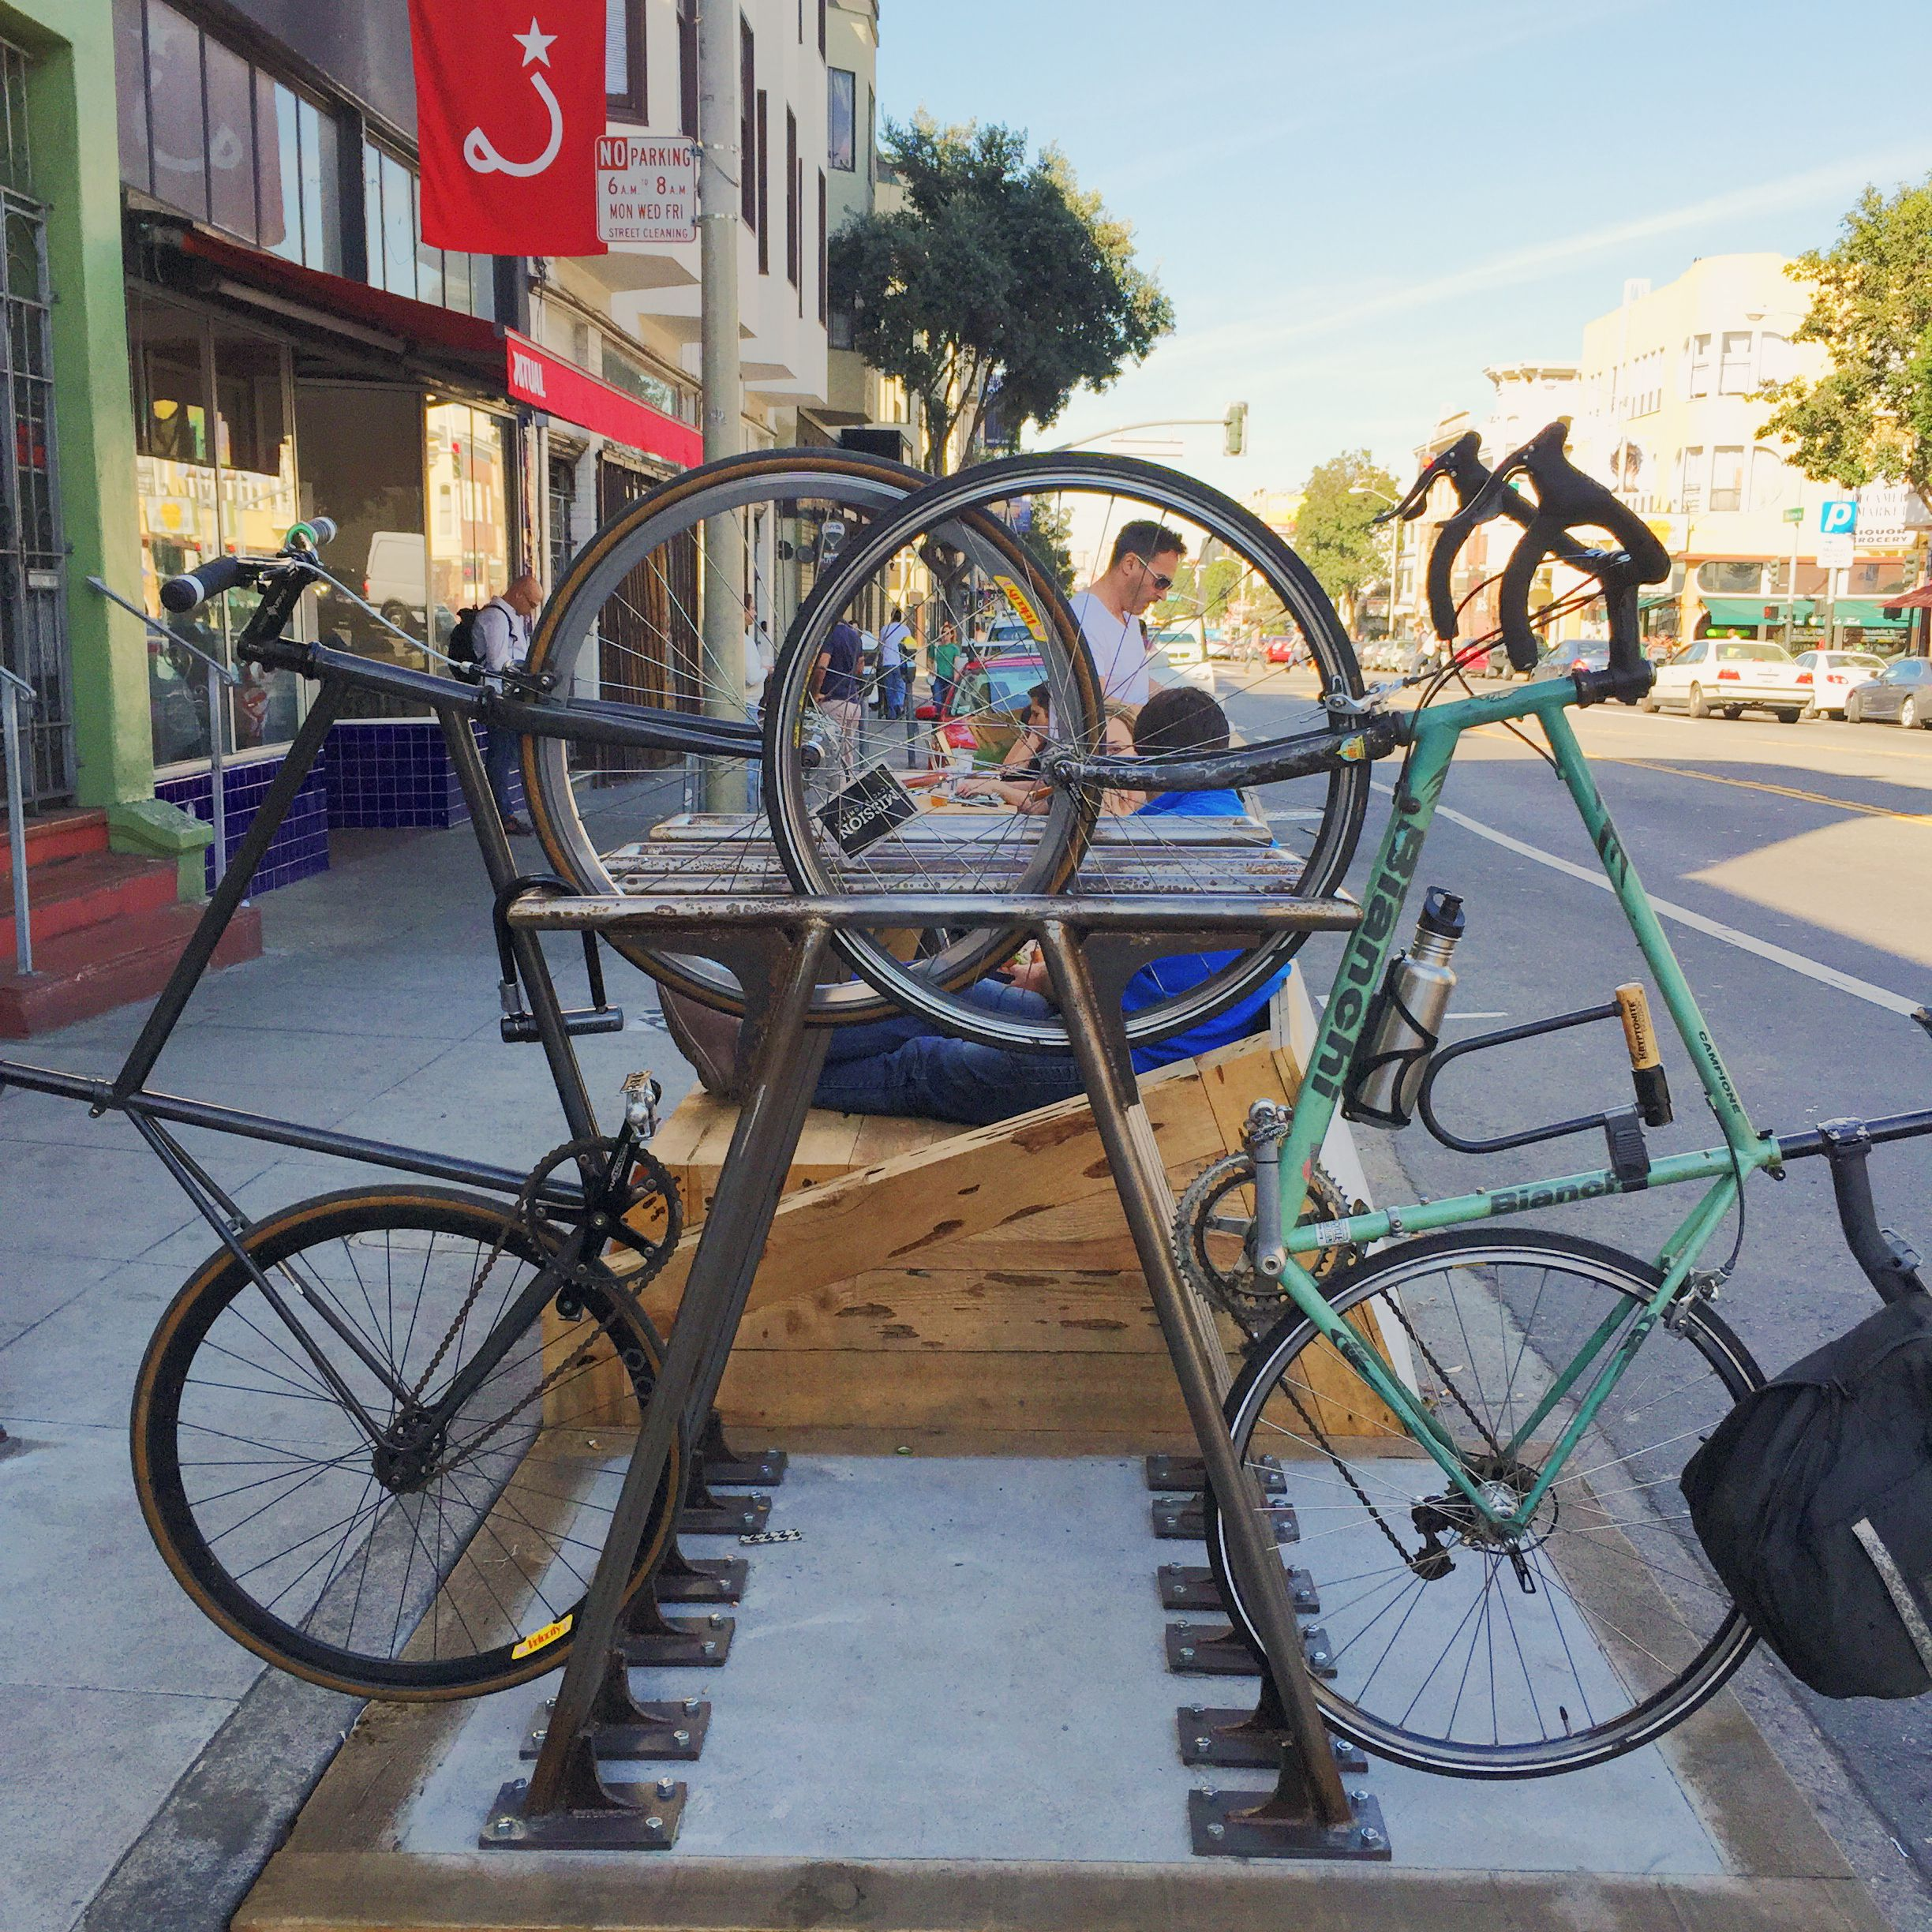 Cool bike rack design in this San Francisco parklet  Compact